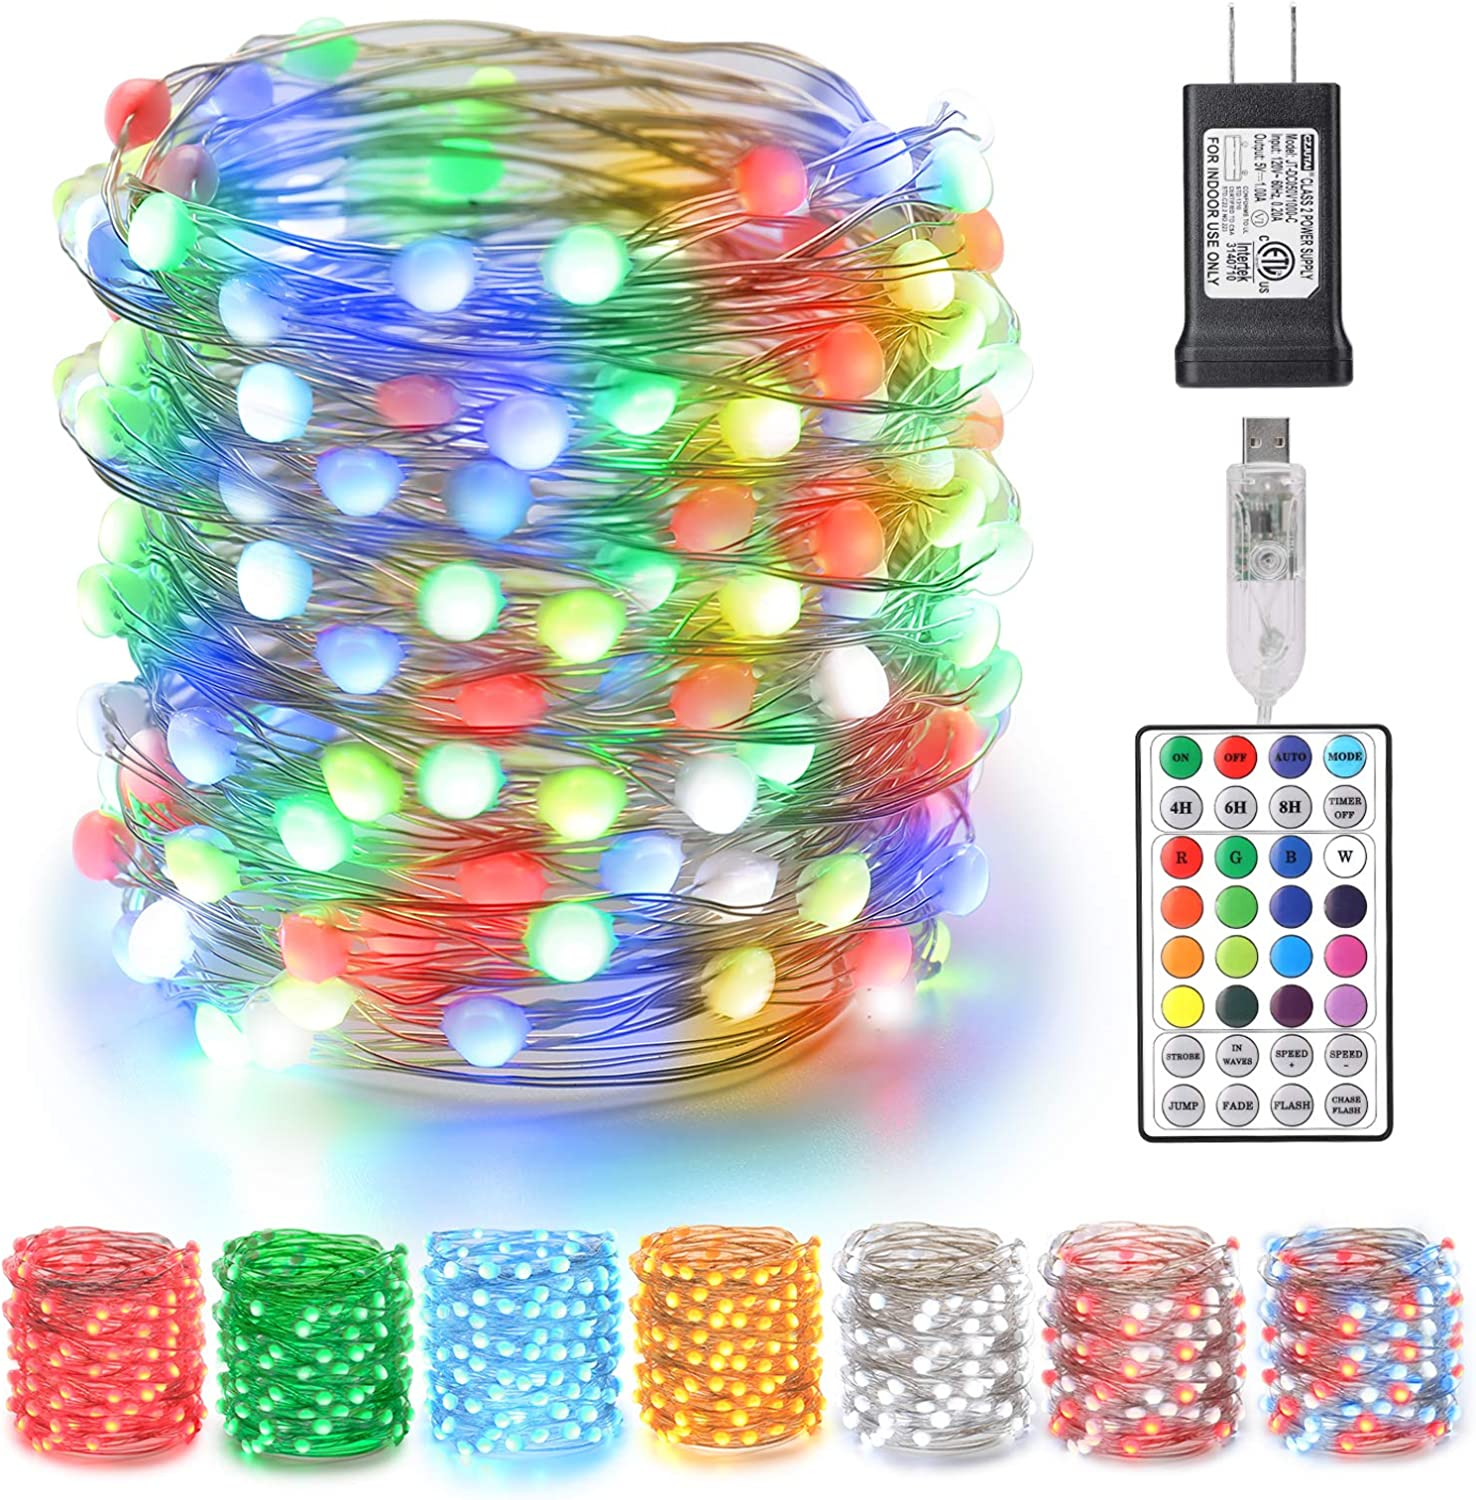 BrizLabs Color Changing Christmas Fairy Lights, 66ft 200 LED Upgraded Fairy String Lights with Larger LED, Unique Dual/Triple Colors USB Christmas Light with Remote & Adapter for Craft Bedroom Wedding